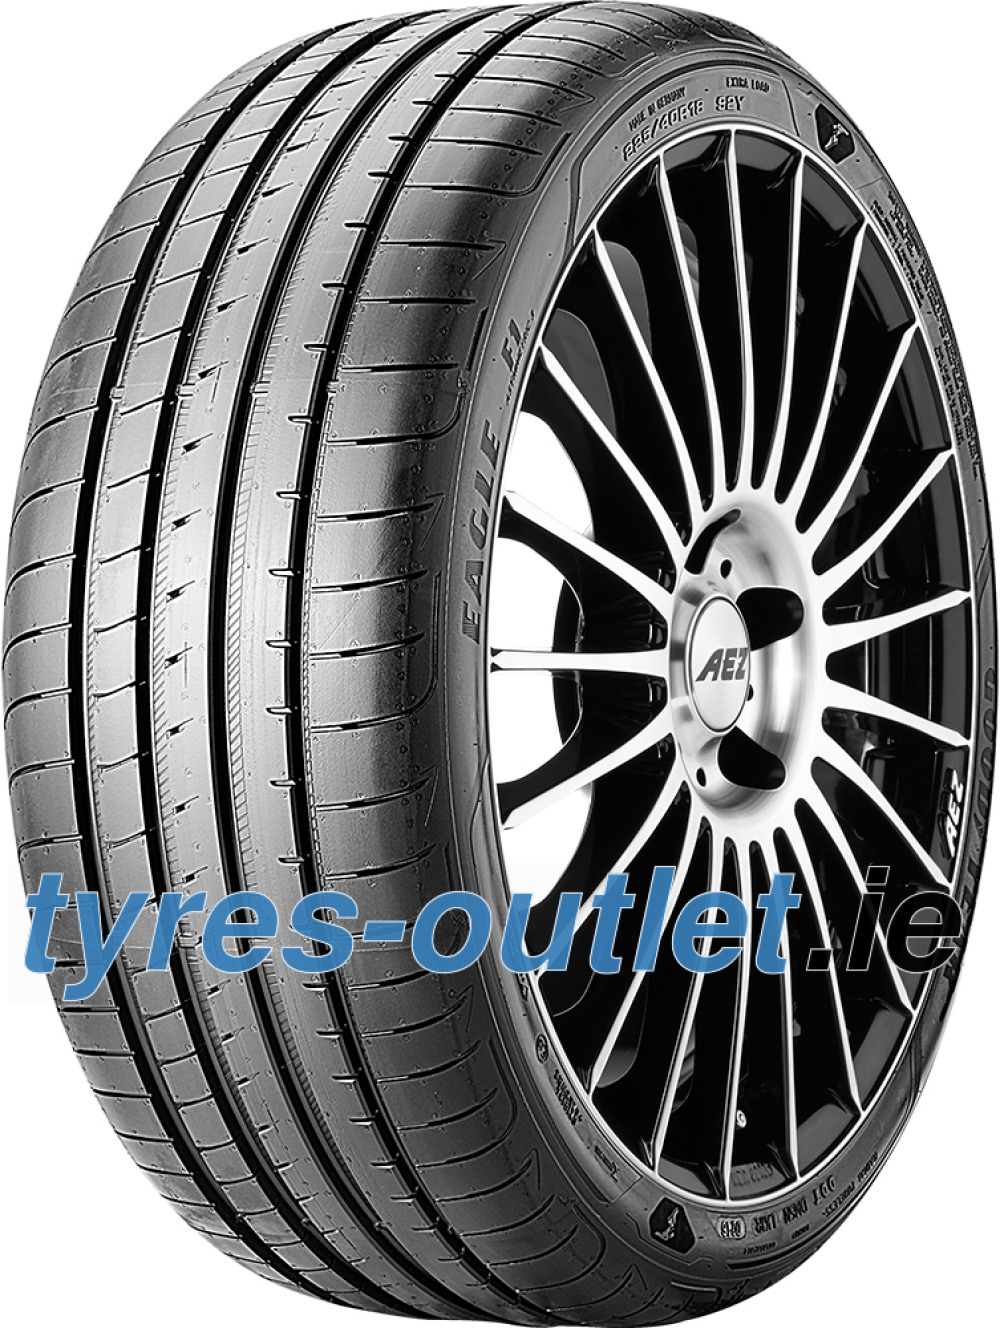 Goodyear Eagle F1 Asymmetric 3 ( 235/40 R18 95Y XL with rim protection (MFS) )